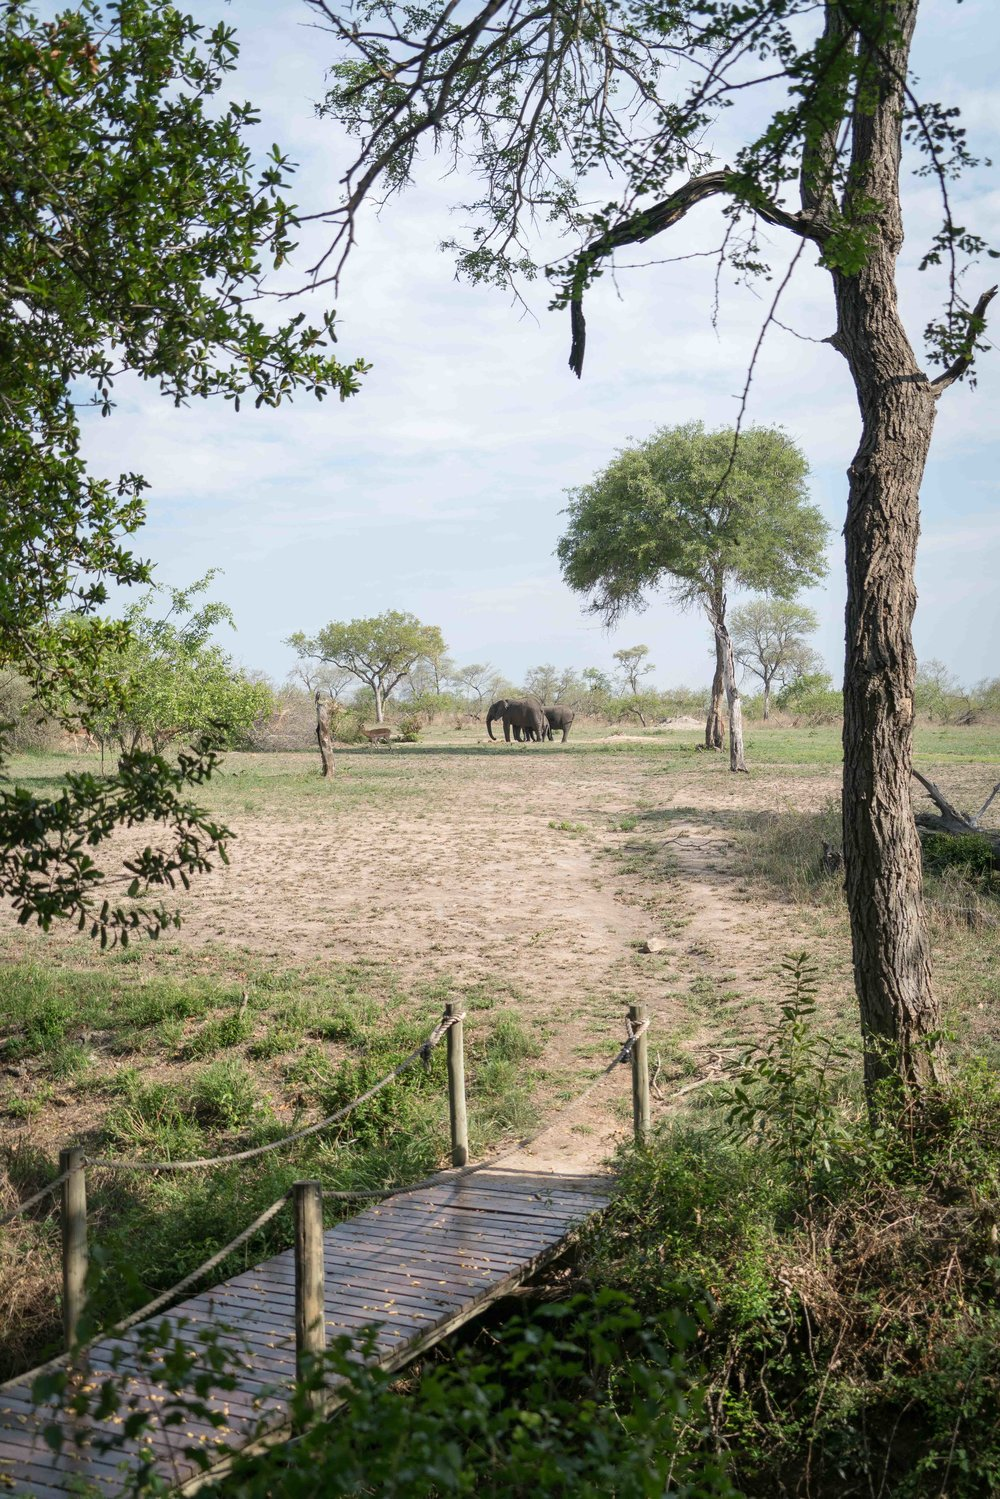 View out the the back of the bar. Elephants today, lions tomorrow. There is an electric fence across the bridge which is not visible.